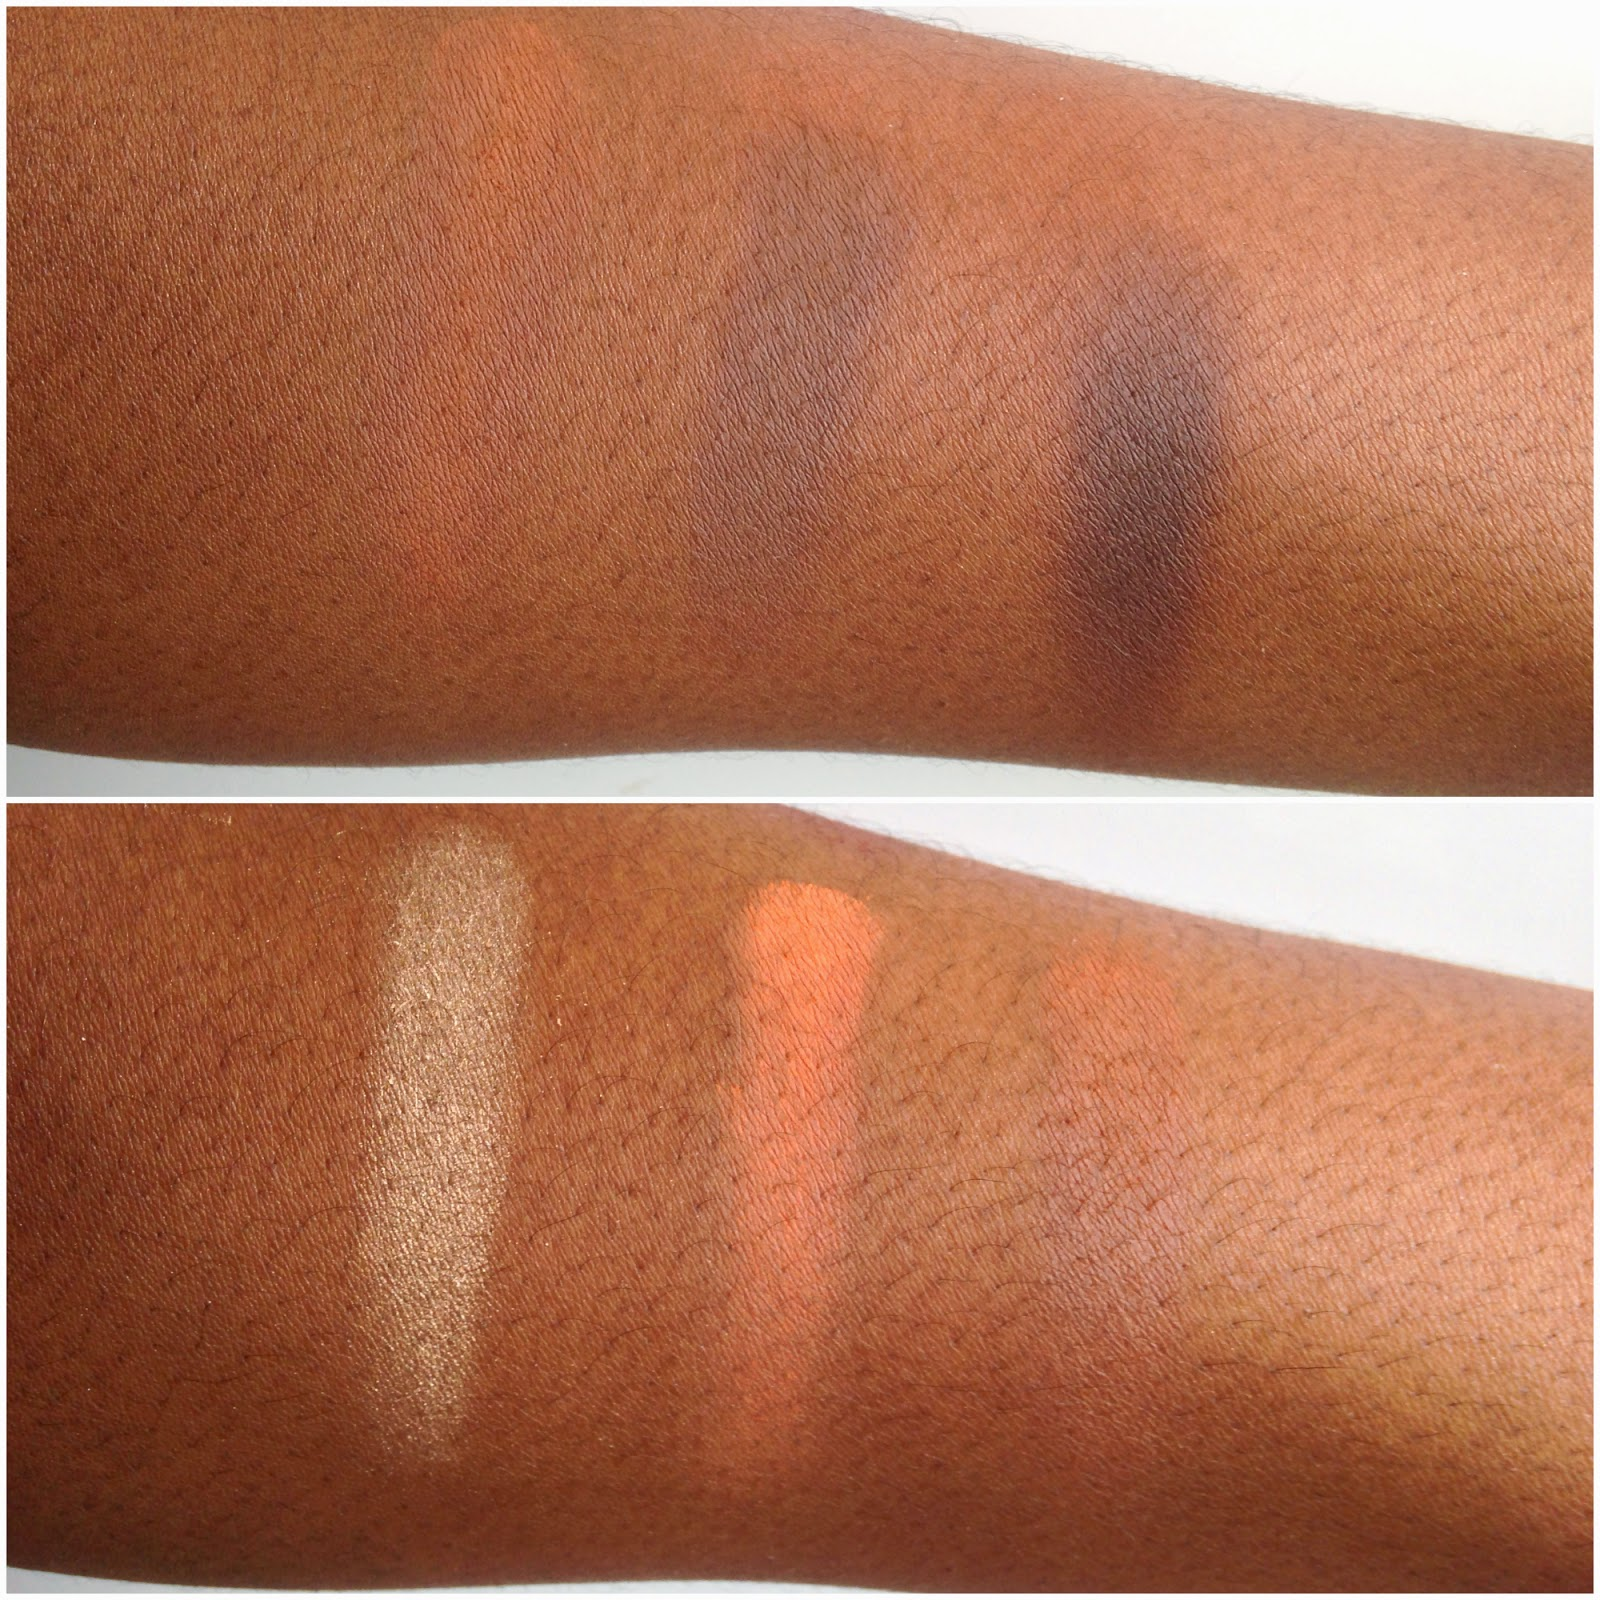 Anastasia Beverly Hills Custom Contour Kit Swatches Discoveries Of Self Blog